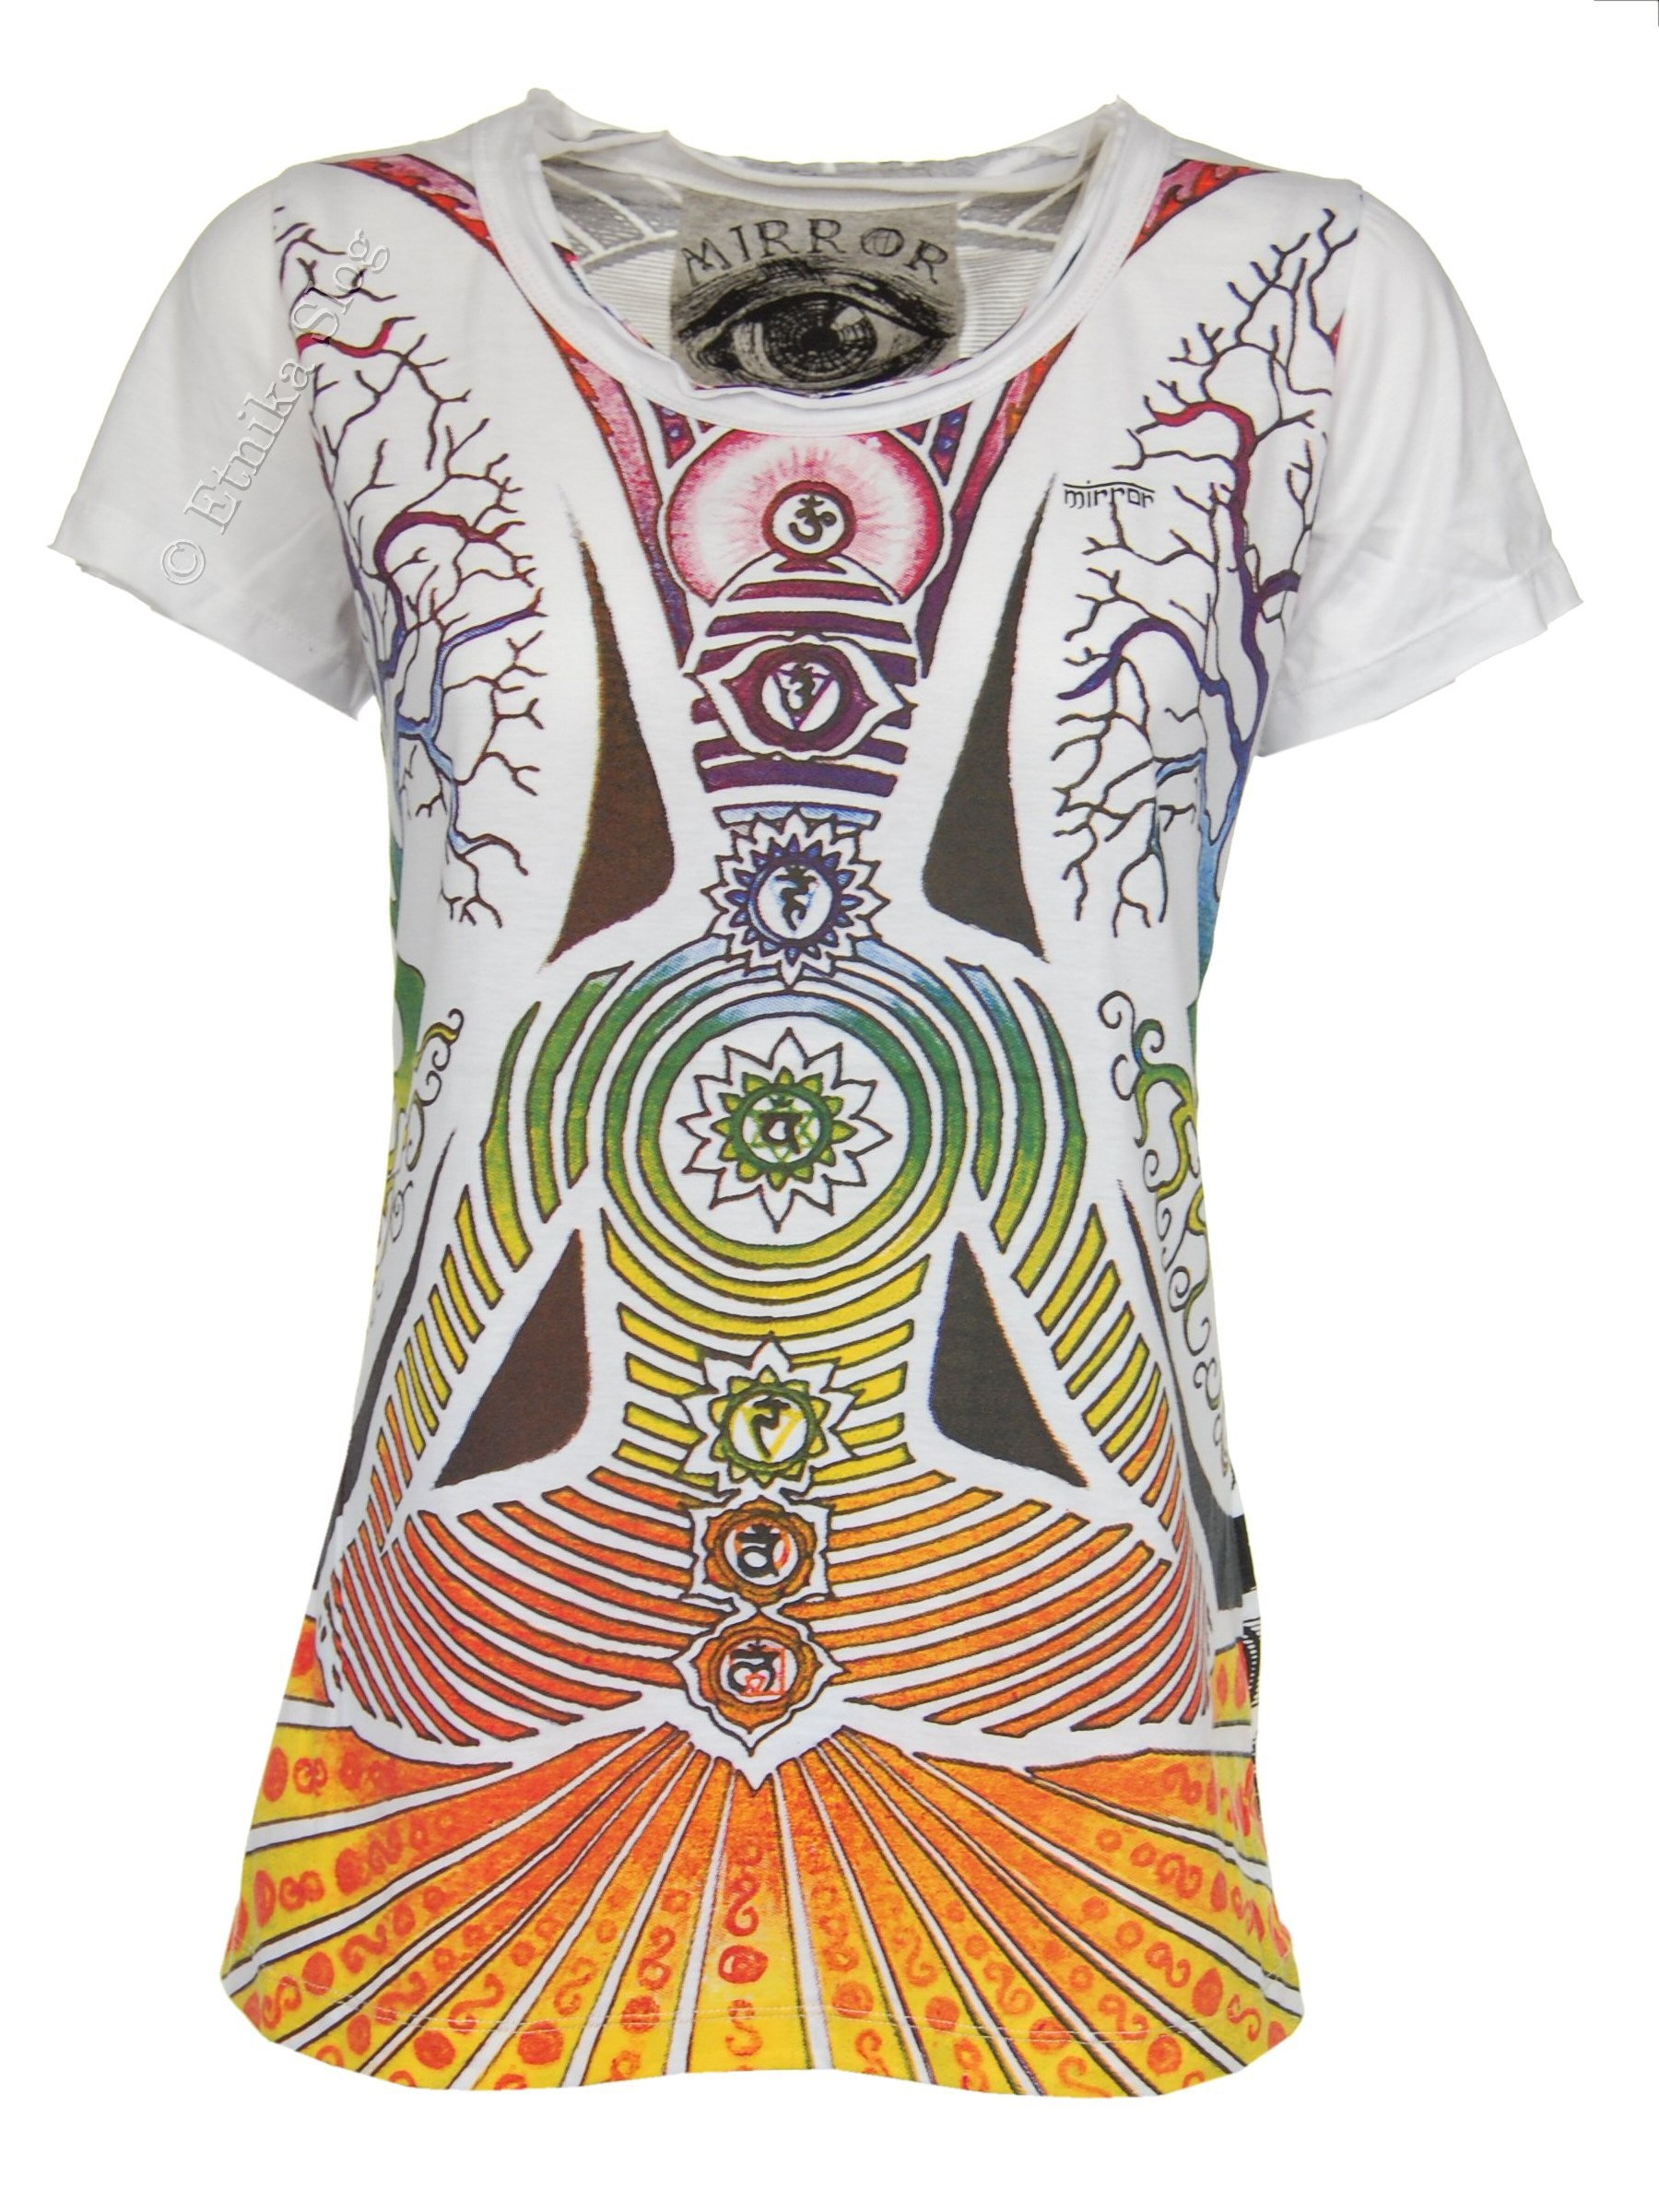 PRINTED T-SHIRTS AB-THM08-21 - Oriente Import S.r.l.